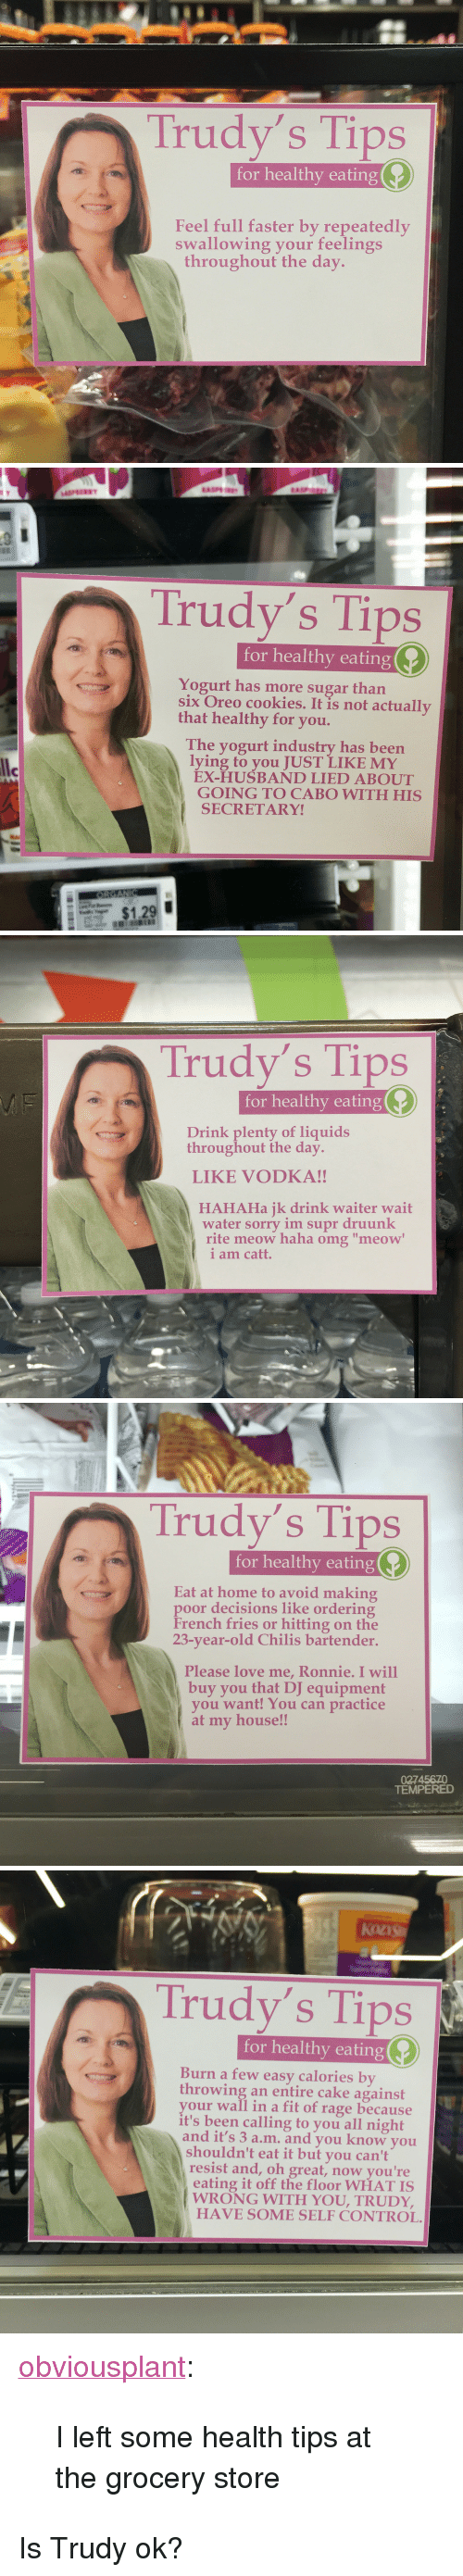 "Trudy: Trudy's Tips  for healthy eating  Feel full faster by repeatedly  swallowing your feelings  throughout the day.   Il  Trudy's Tips  for healthy eating  Yogurt has more sugar than  six Oreo cookies. It is not actually  that healthy for you.  The yogurt industry has been  lying to you JUST LIKE MY  le  ÉX-HUSBAND LIED ABOUT  GOING TO CABO WITH HIS  SECRETARY!  $1,29   Trudy's Tips  for healthy eating  Drink plenty of liquids  throughout the day  LIKE VODKA!!  HAHAHa jk drink waiter wait  water sorry im supr druunk  rite meow haha omg ""meow  i am catt.   Trudy's Tips  for healthy eating  Eat at home to avoid making  poor decisions like ordering  French fries or hitting on the  23-year-old Chilis bartender.  Please love me, Ronnie. I will  buy you that DJ equipment  you want! You can practice  at my house!!  02745670  TEMPERED   Trudy's Tips  for healthy eating  Burn a few easy calories by  throwing an entire cake against  your wall in a fit of rage because  it's been calling to you all night  and it's 3 a.m. and you know you  shouldn't eat it but you can't  resist and, oh great, now you're  eating it off the floor WHAT IS  WRONG WITH YOU, TRUDY,  HAVE SOME SELF CONTROL <p><a href=""http://obviousplant.com/post/155682003903/i-left-some-health-tips-at-the-grocery-store"" class=""tumblr_blog"">obviousplant</a>:</p><blockquote><p>I left some health tips at the grocery store</p></blockquote>  <p>Is Trudy ok?</p>"